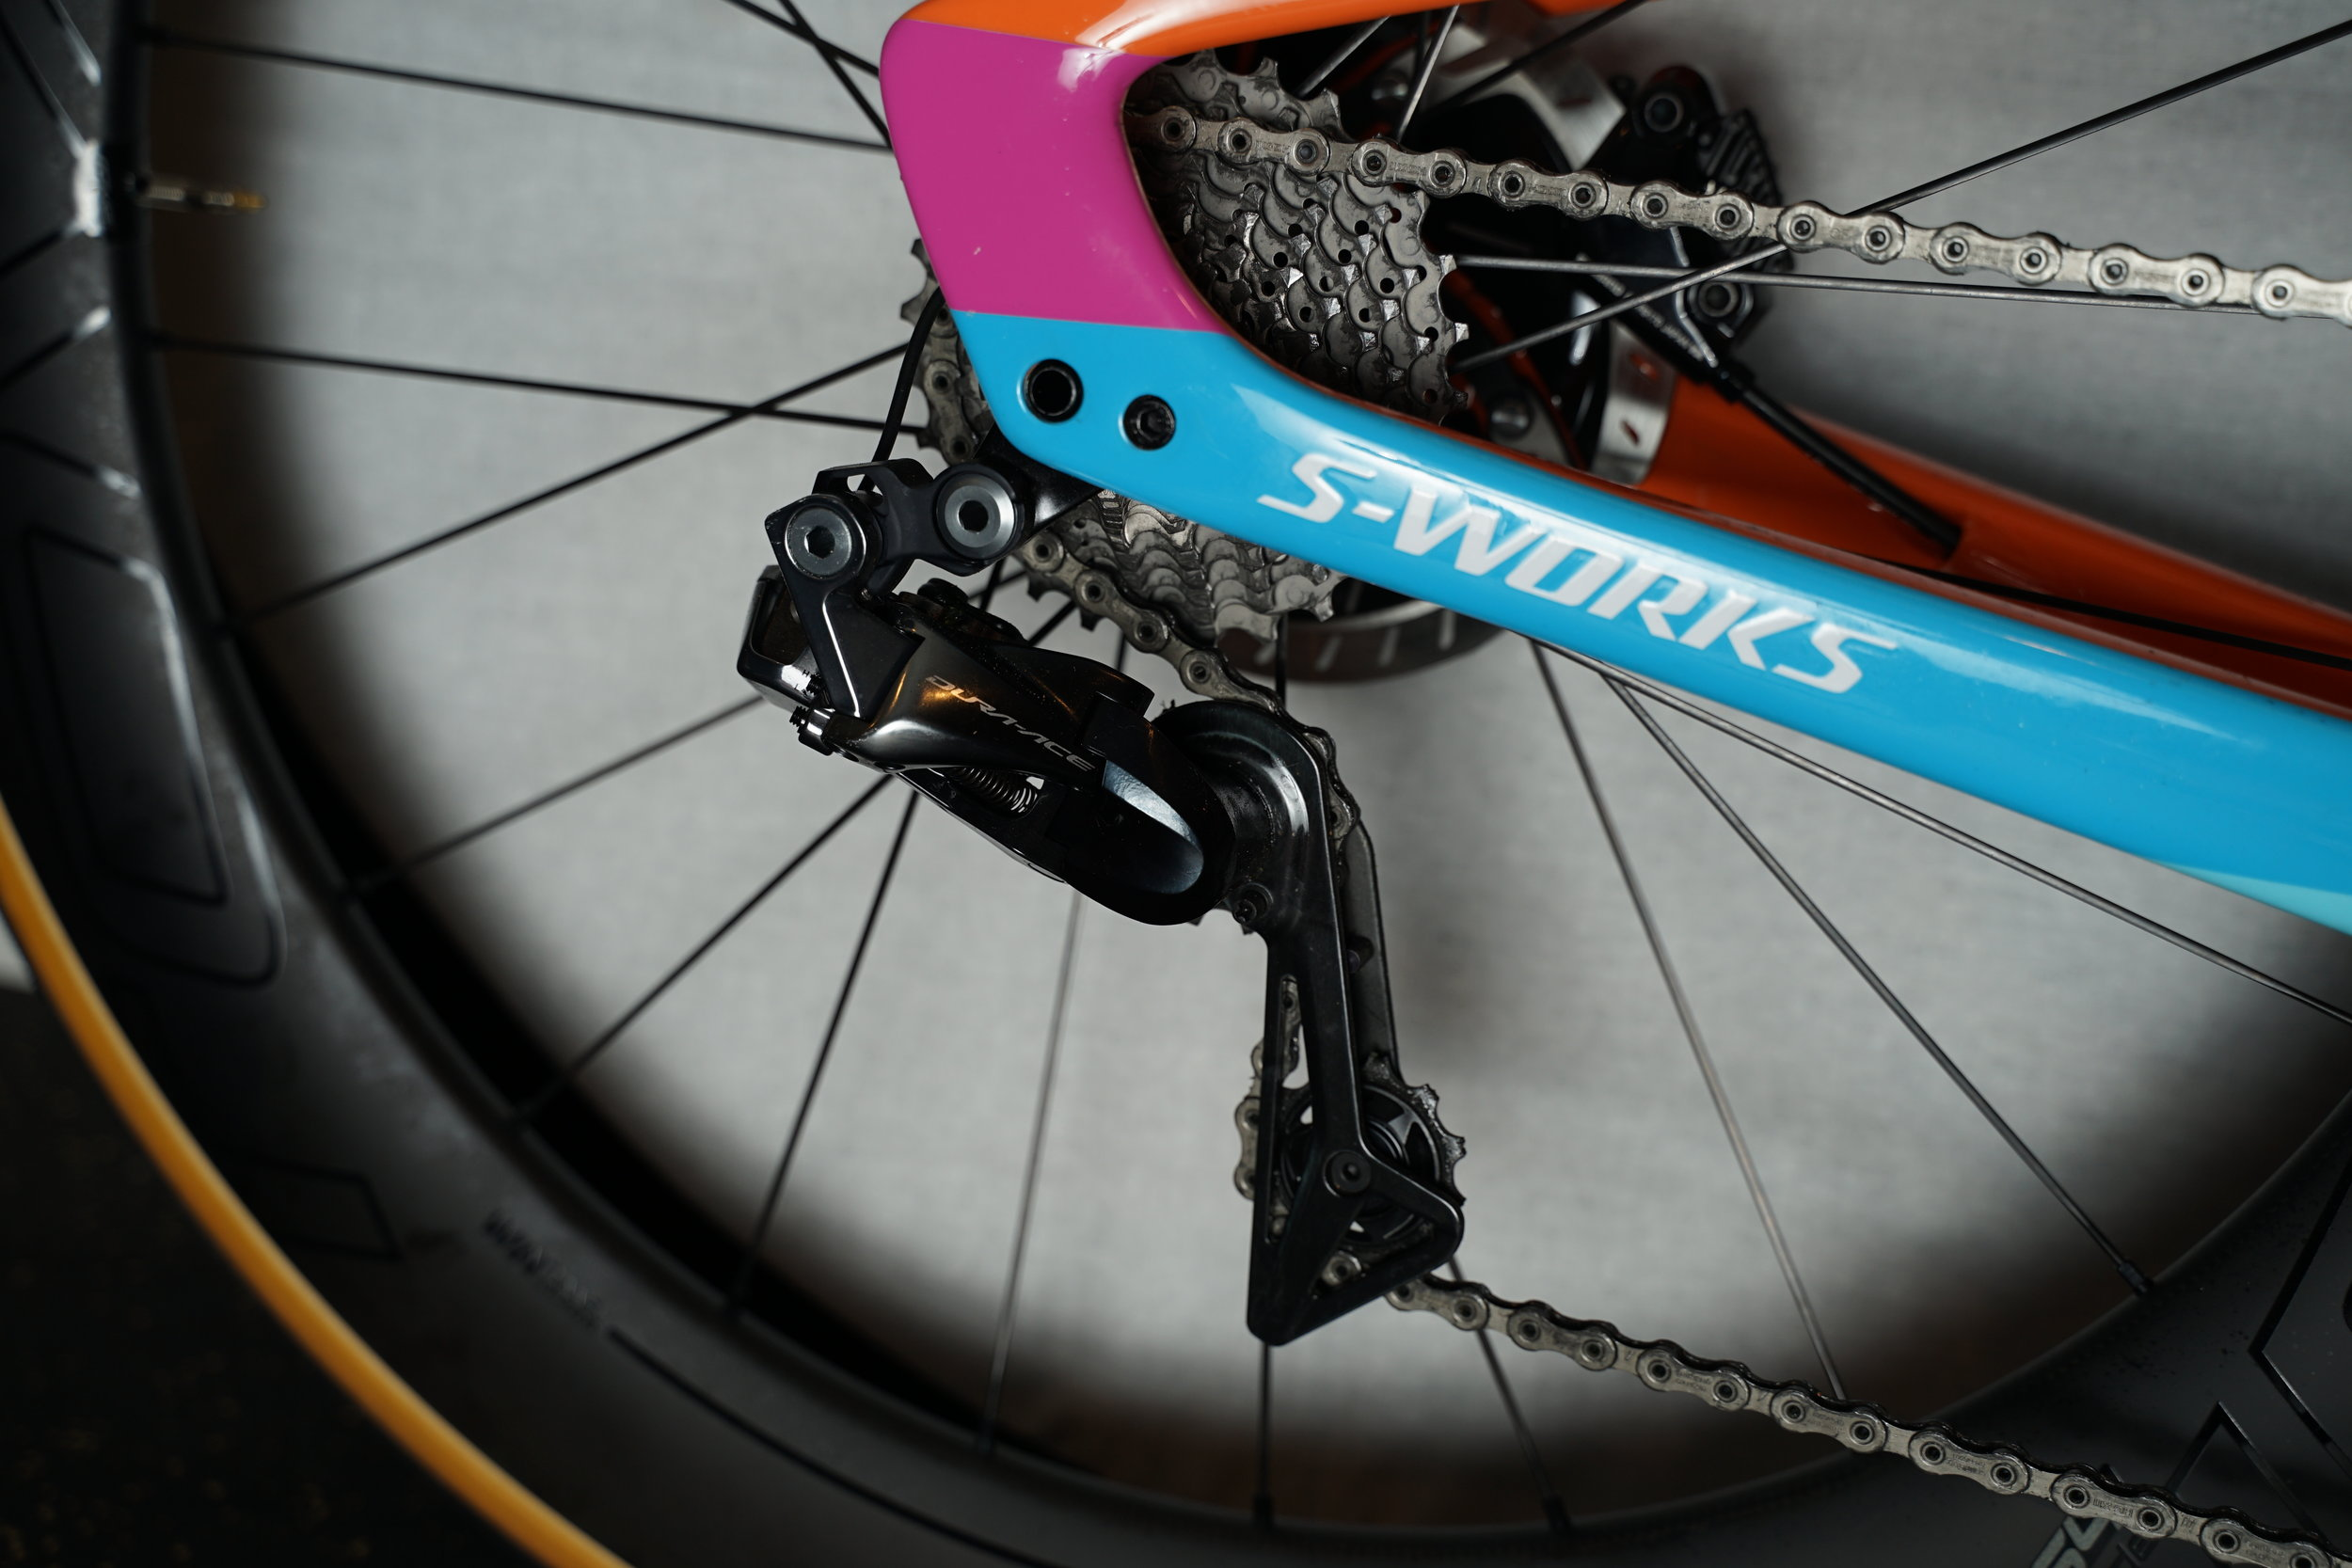 "Dura-ace Di2 rear derailleur and ""S-Works"" emblazoned on the chain stay."